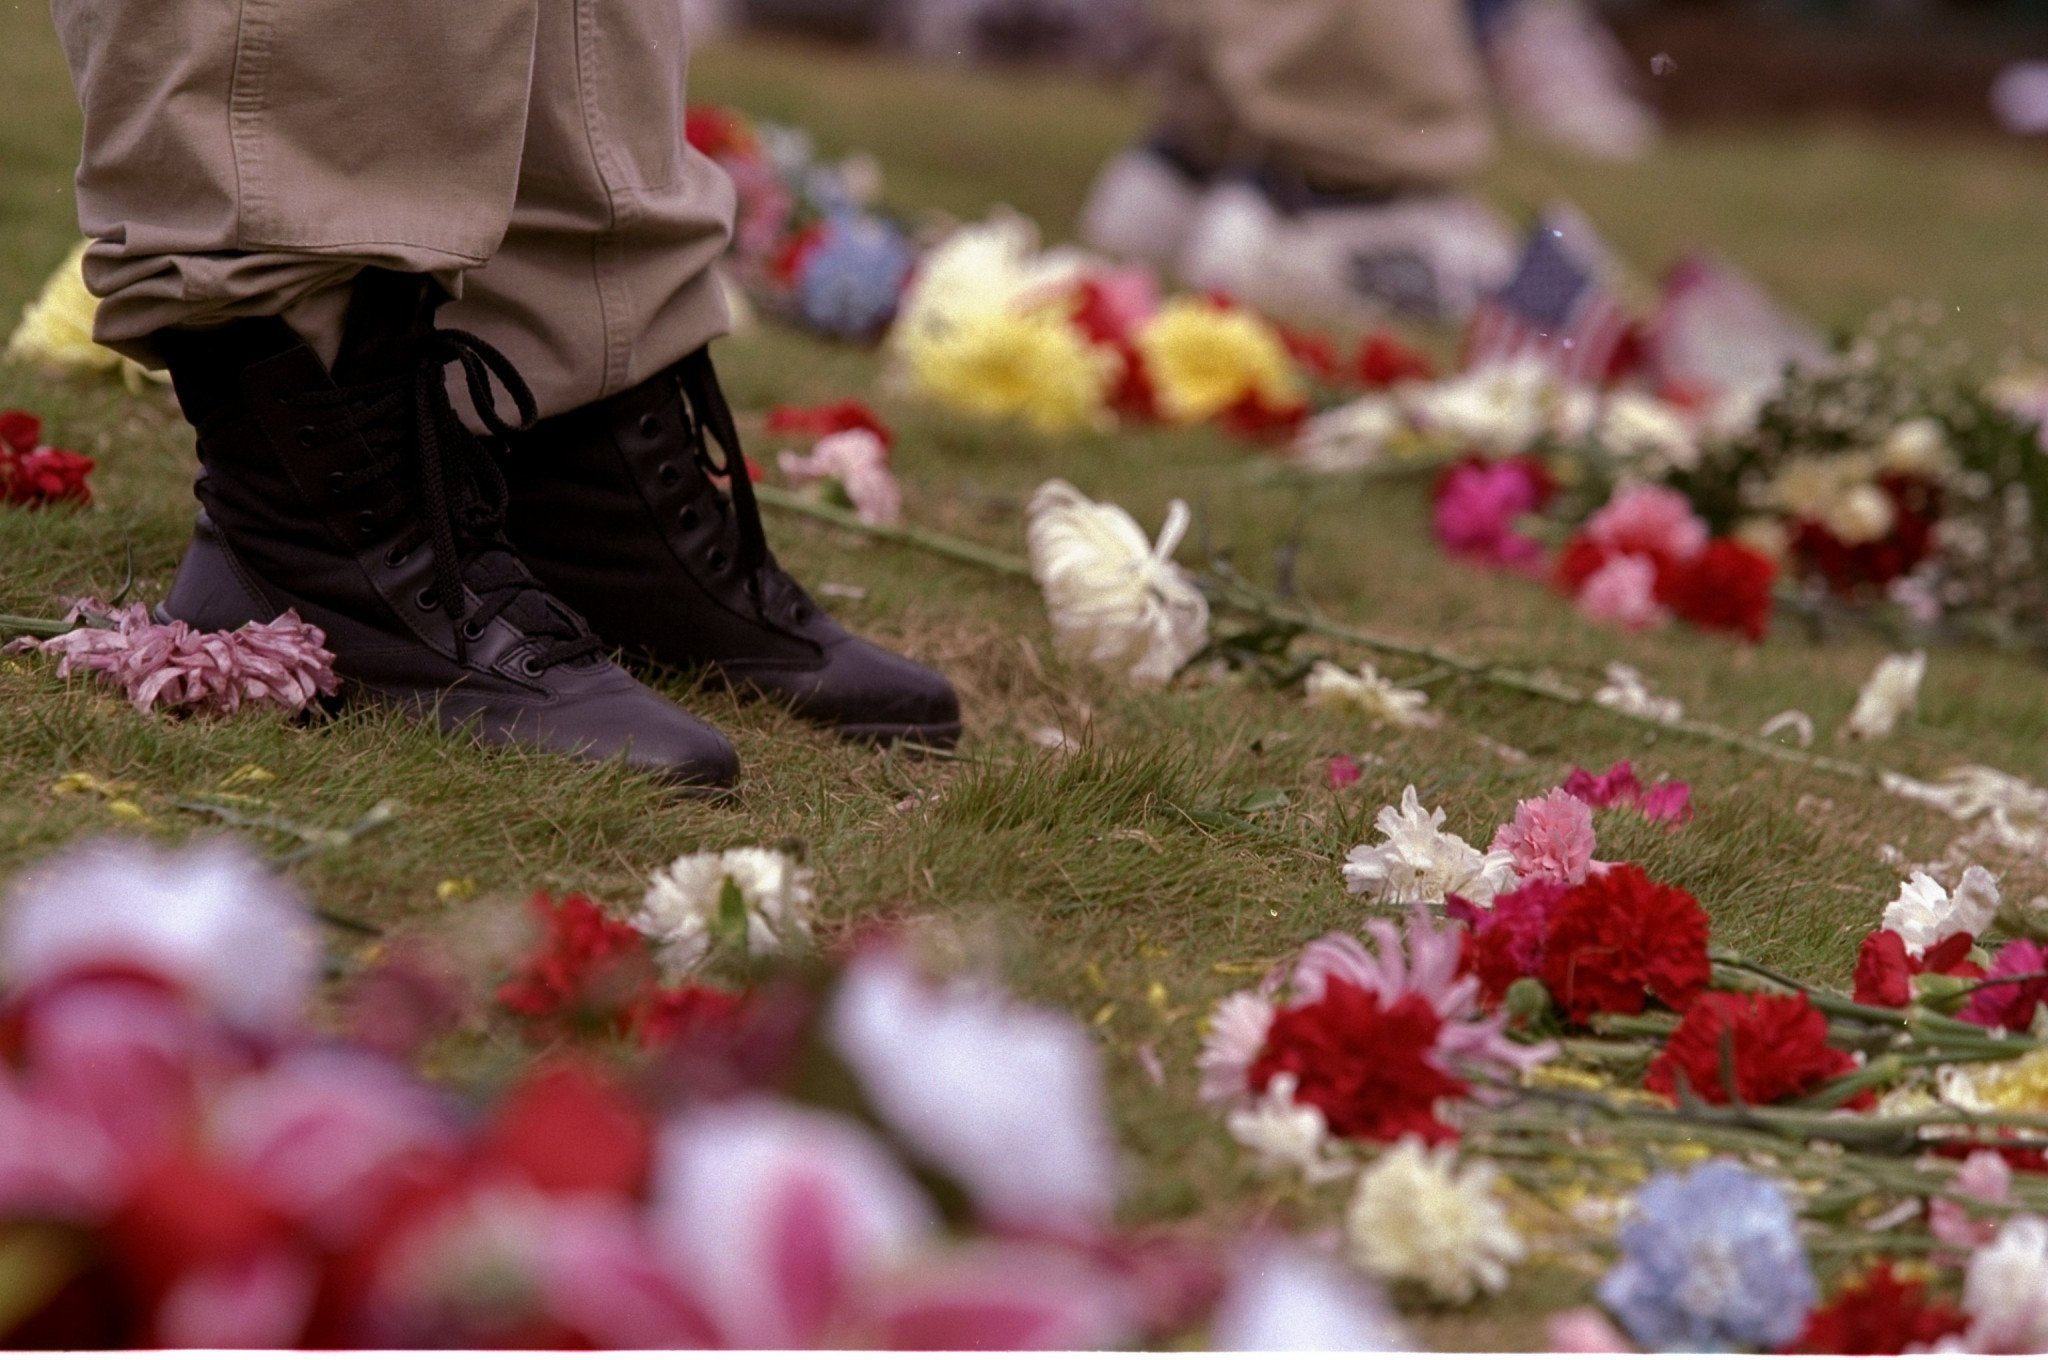 A bomb at Centennial Park killed two people ©Getty Images